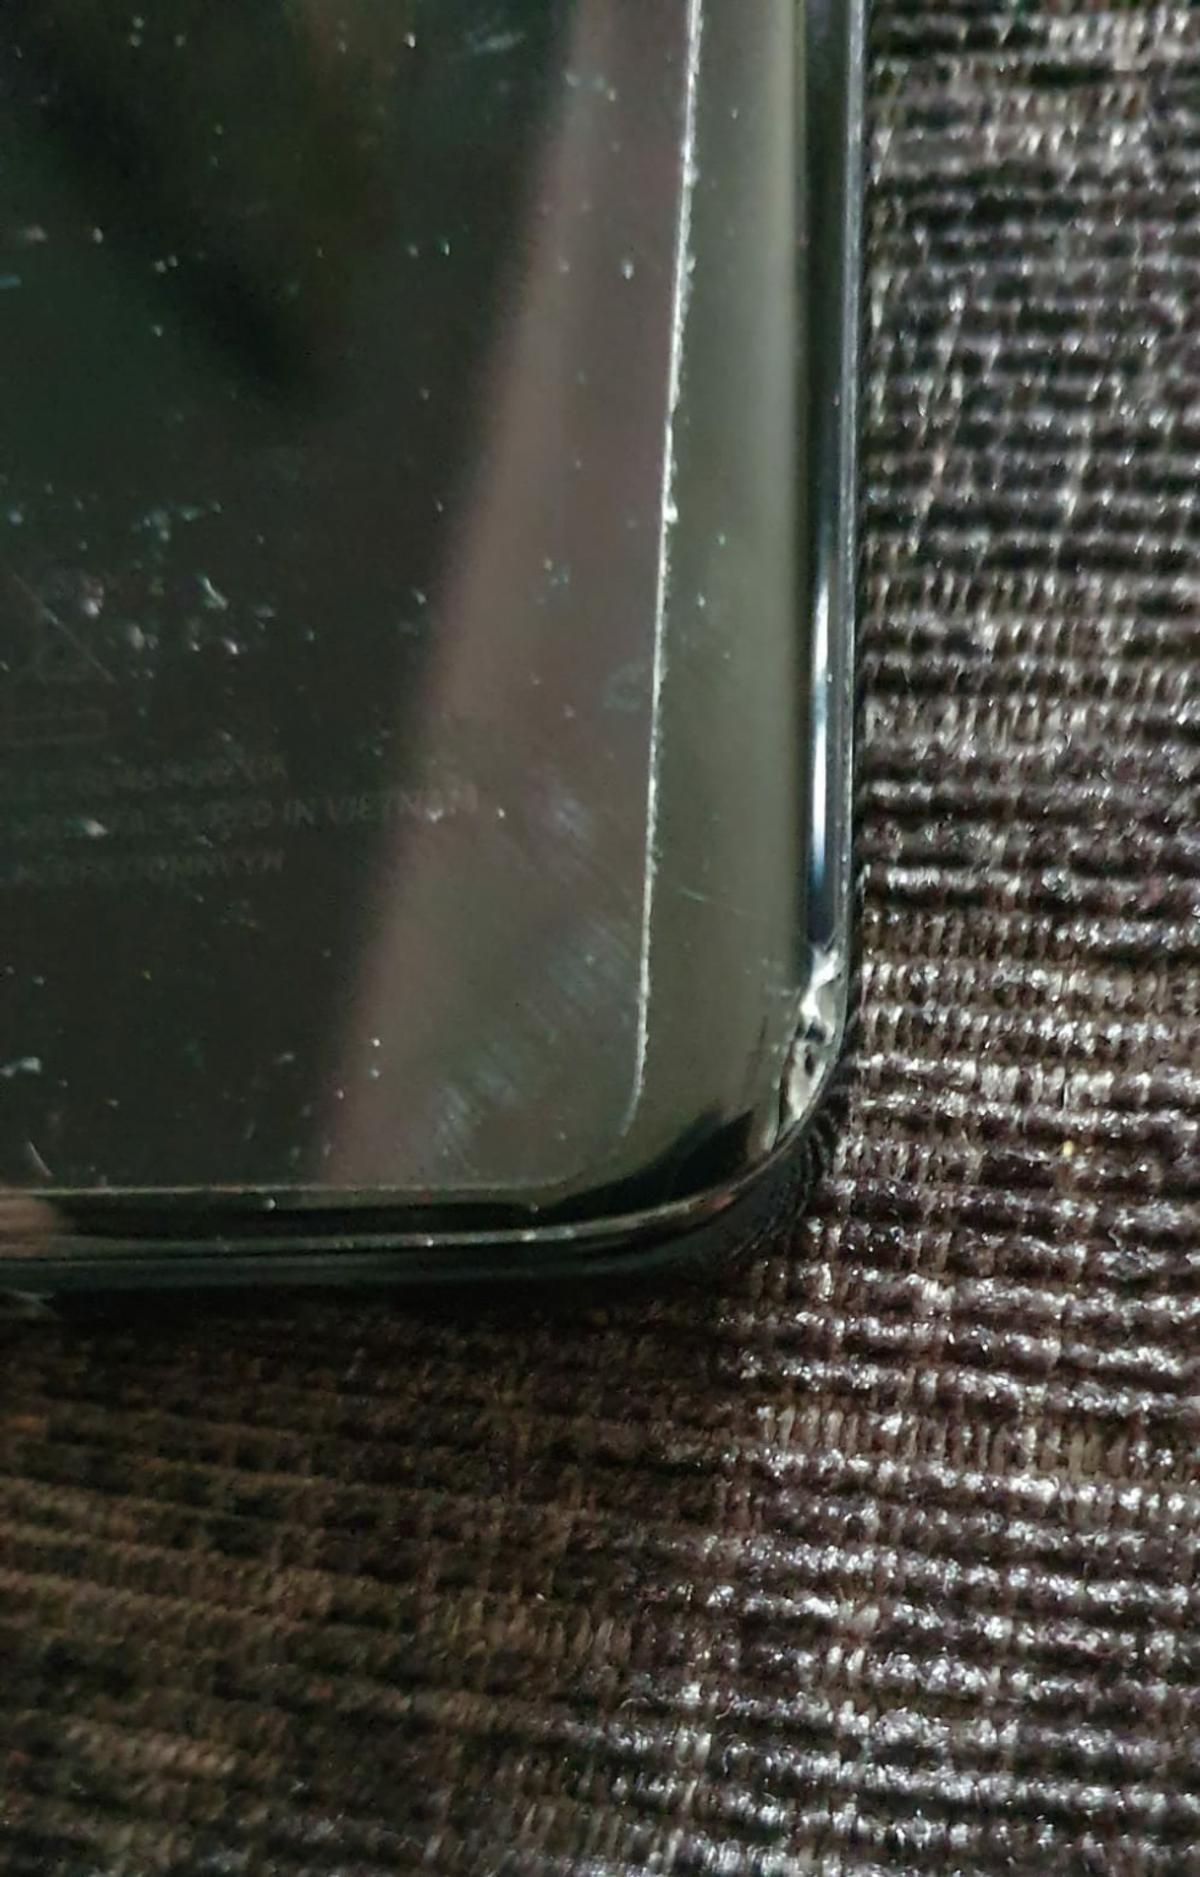 I'm selling my S8 due to upgrade. Been looked after very well. only noticed the chips on the back when I took the case off for the photo ☹ Doesnt effect the phone at all and could prob buy a new back. Full working order would have happily kept it if my upgrade wasn't due. I have the orginal box and charger. still got the cellophane on the back from when I originally bought it.  No silly offers